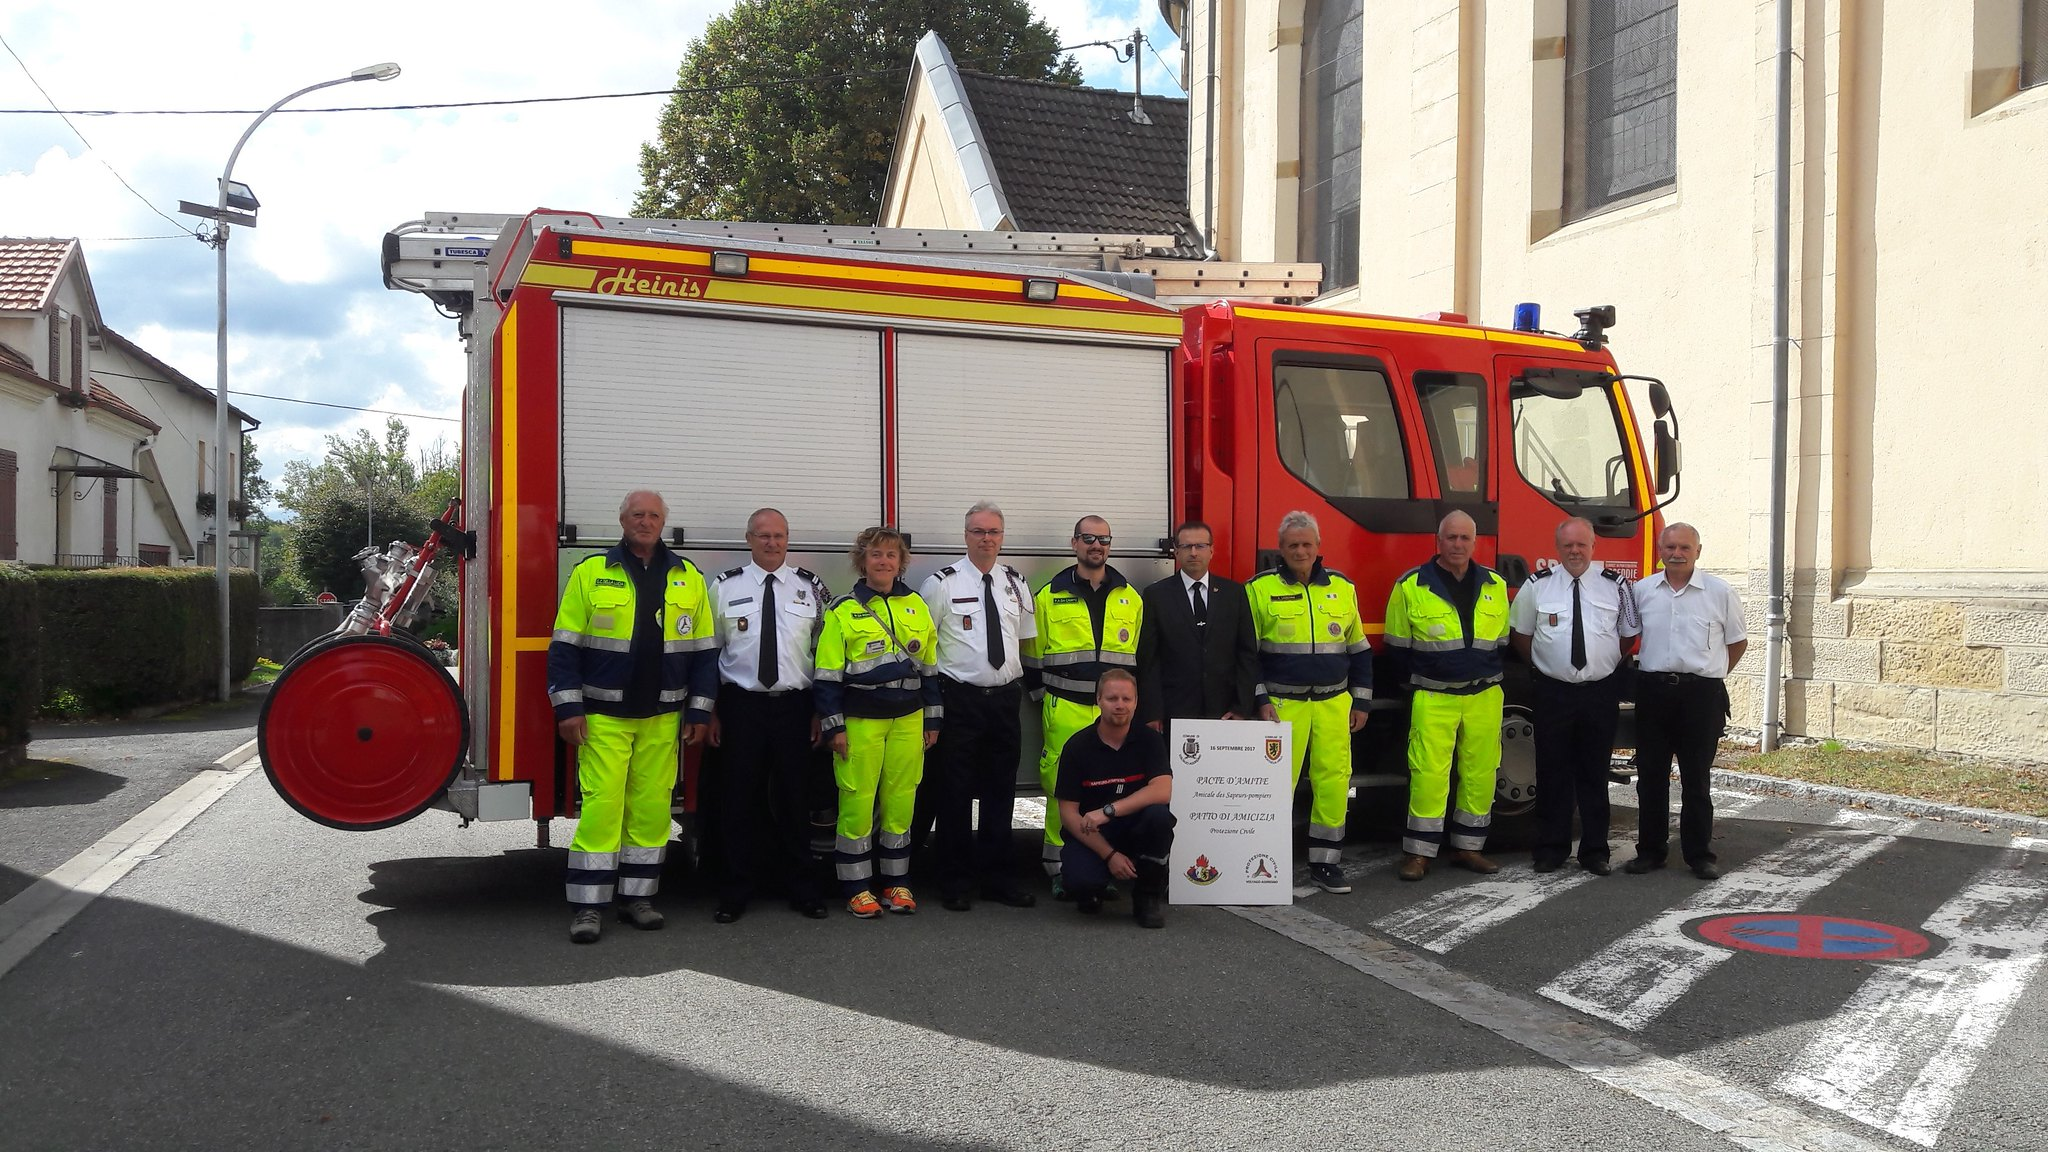 16/09 Rencontre officielle Pompiers MX-VX/Protection Civile VOLTAGO